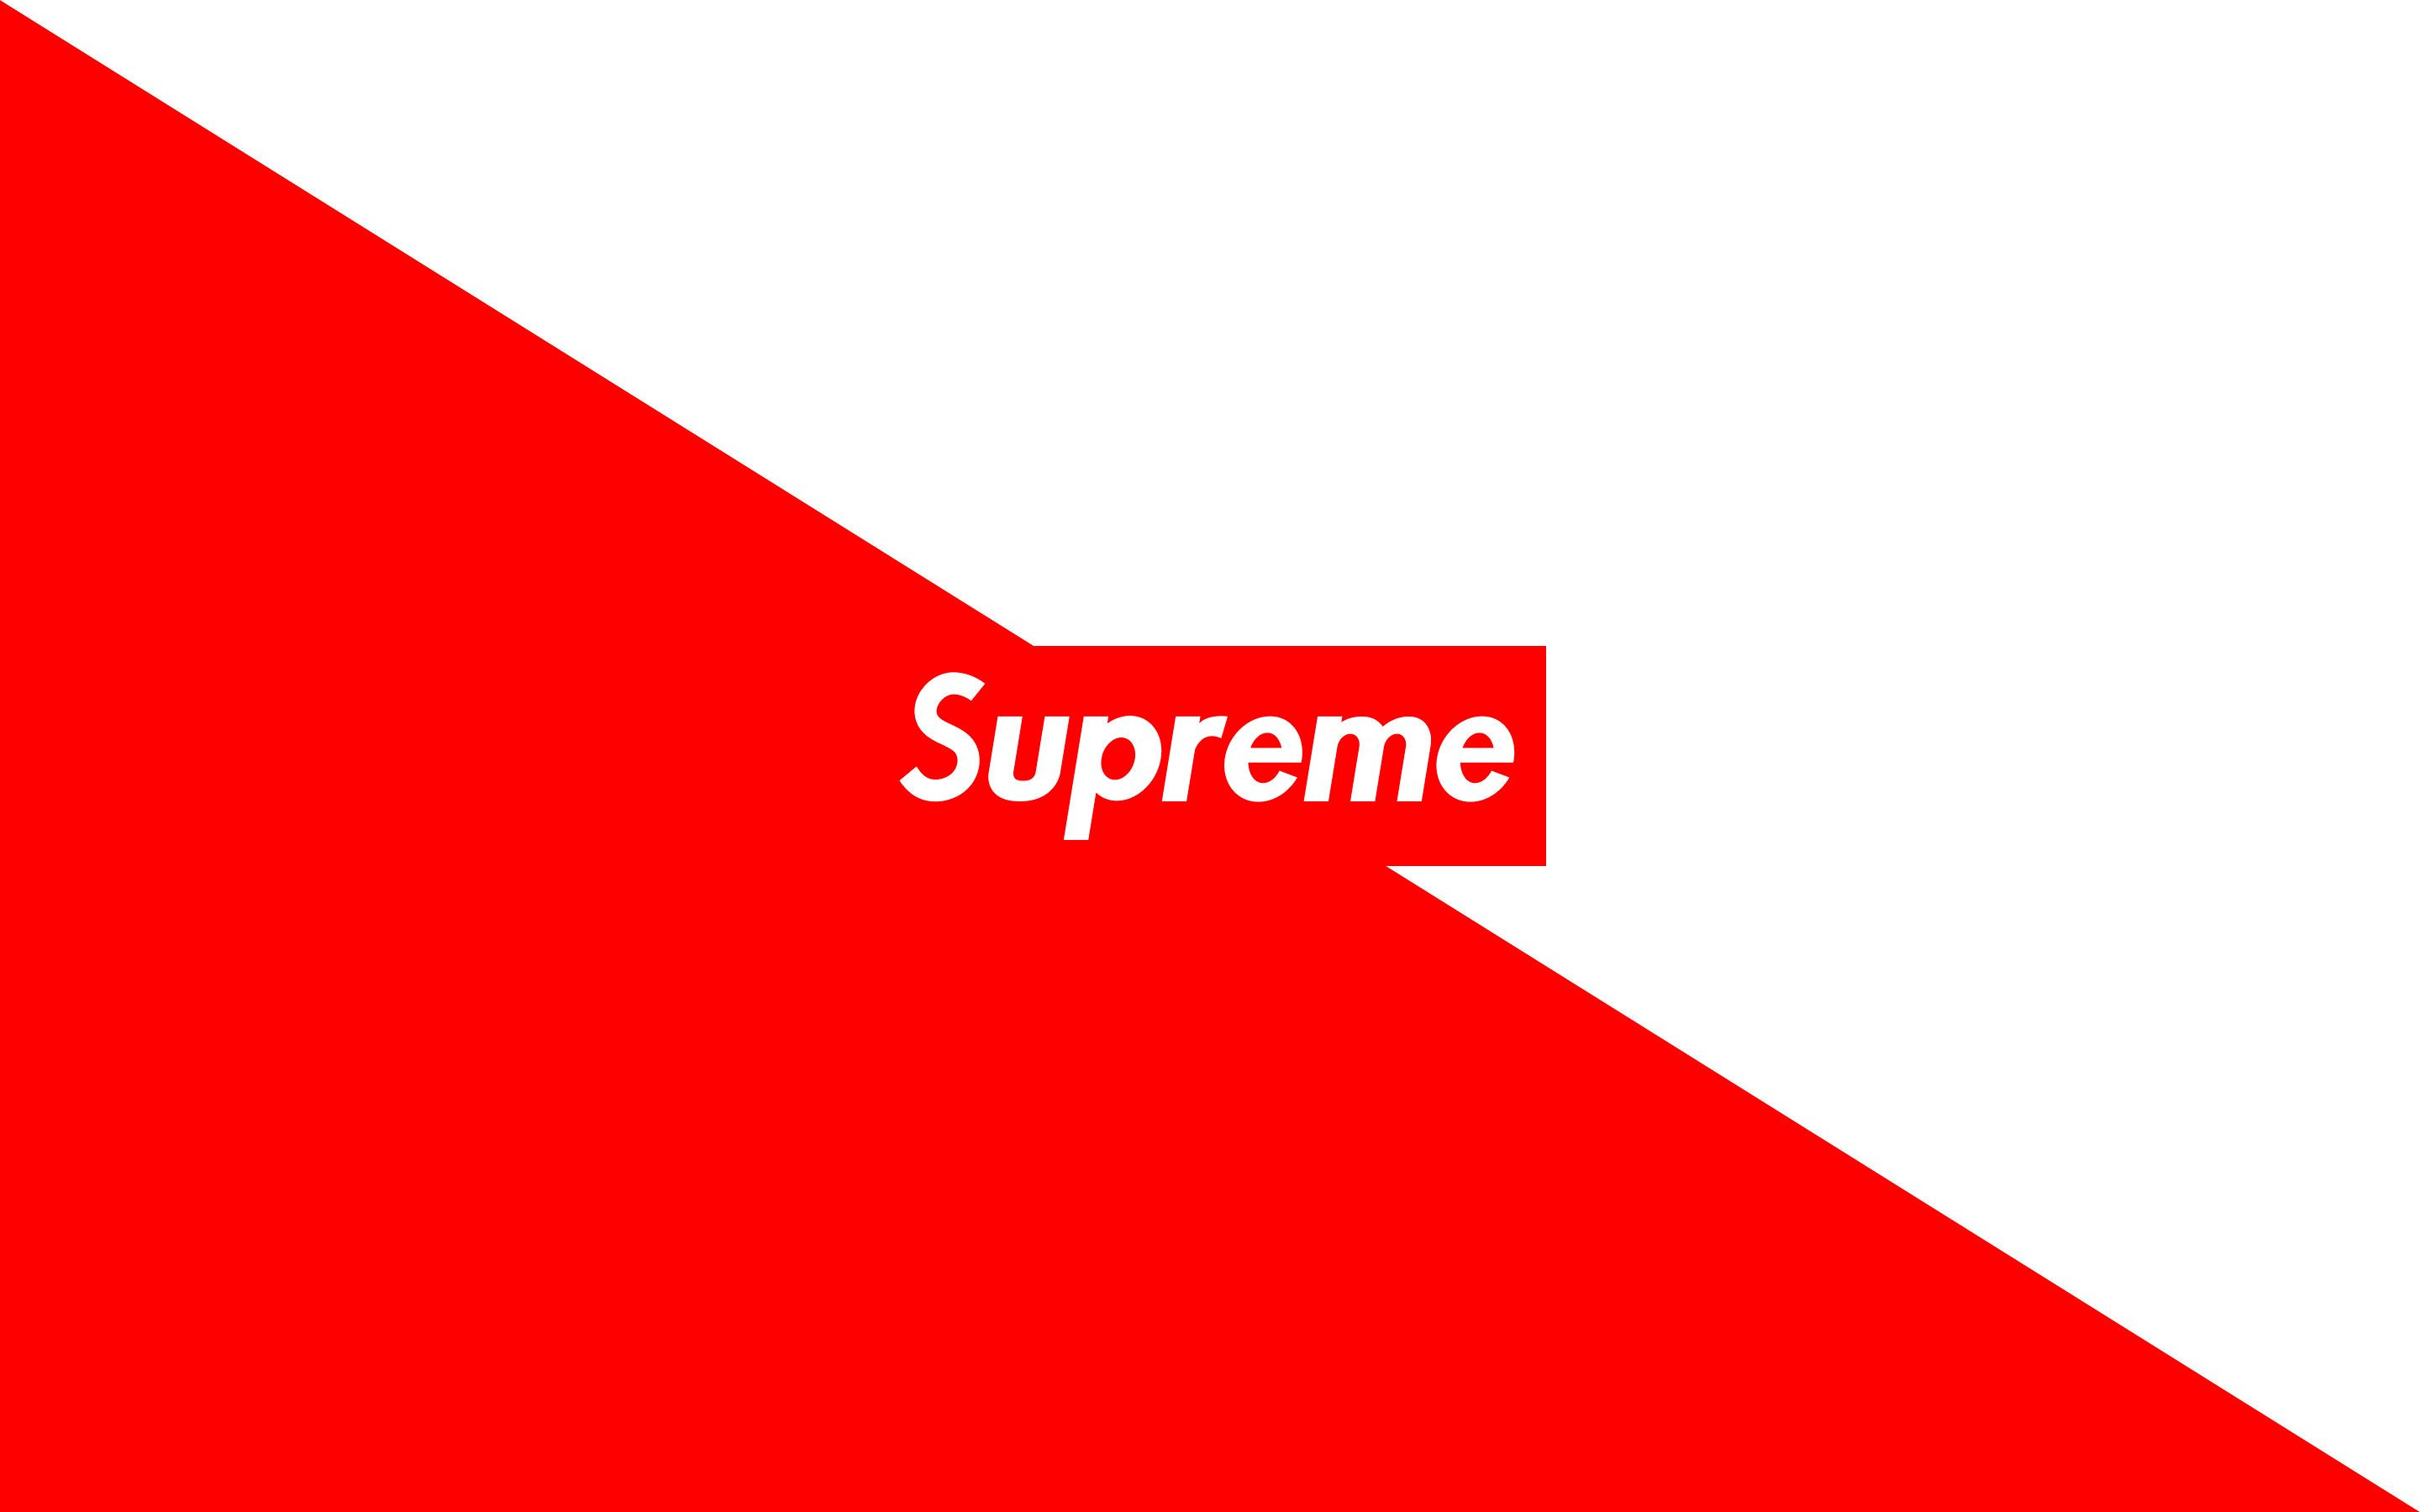 Supreme Wallpapers   Top Supreme Backgrounds   WallpaperAccess 2880x1800